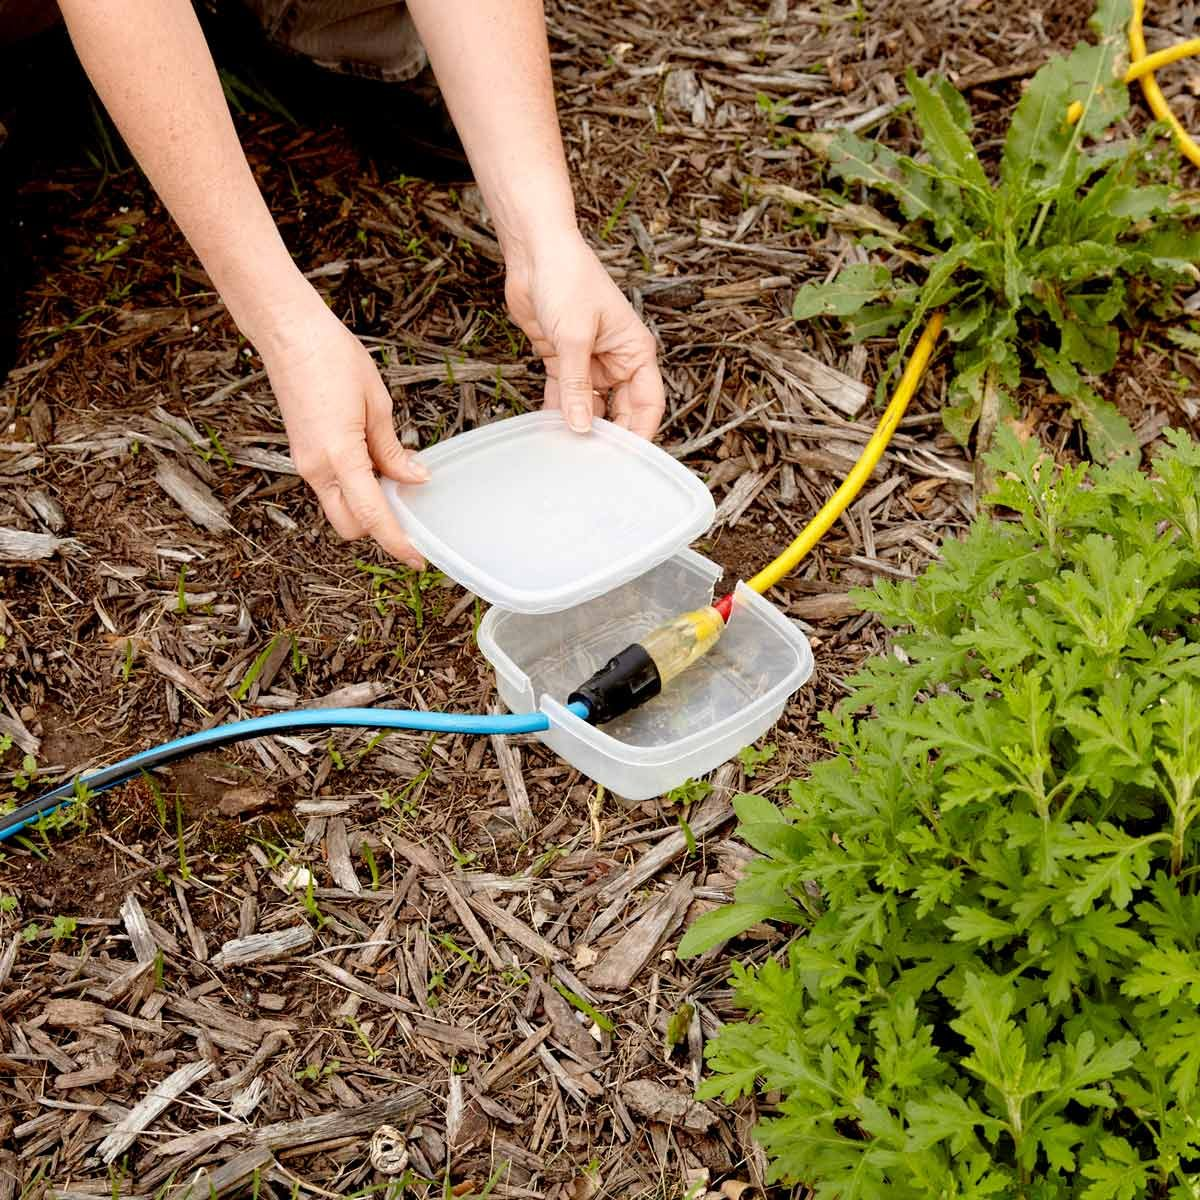 Temporary extension cord exterior protection